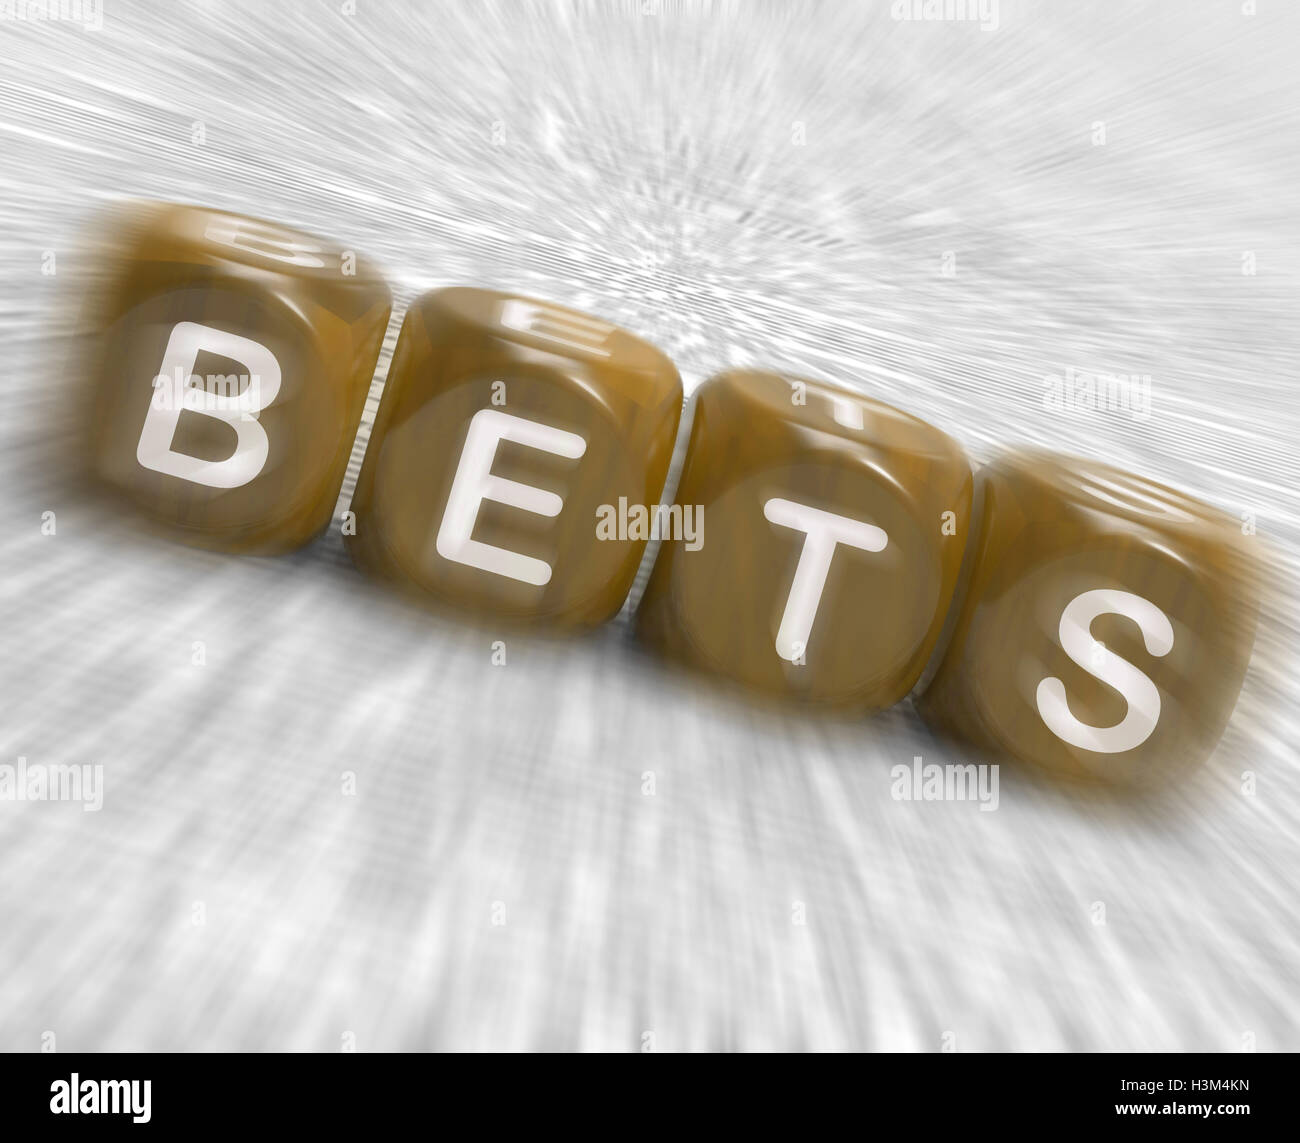 Bets Dice Displays Gambling Chance Or Sweep Stake - Stock Image